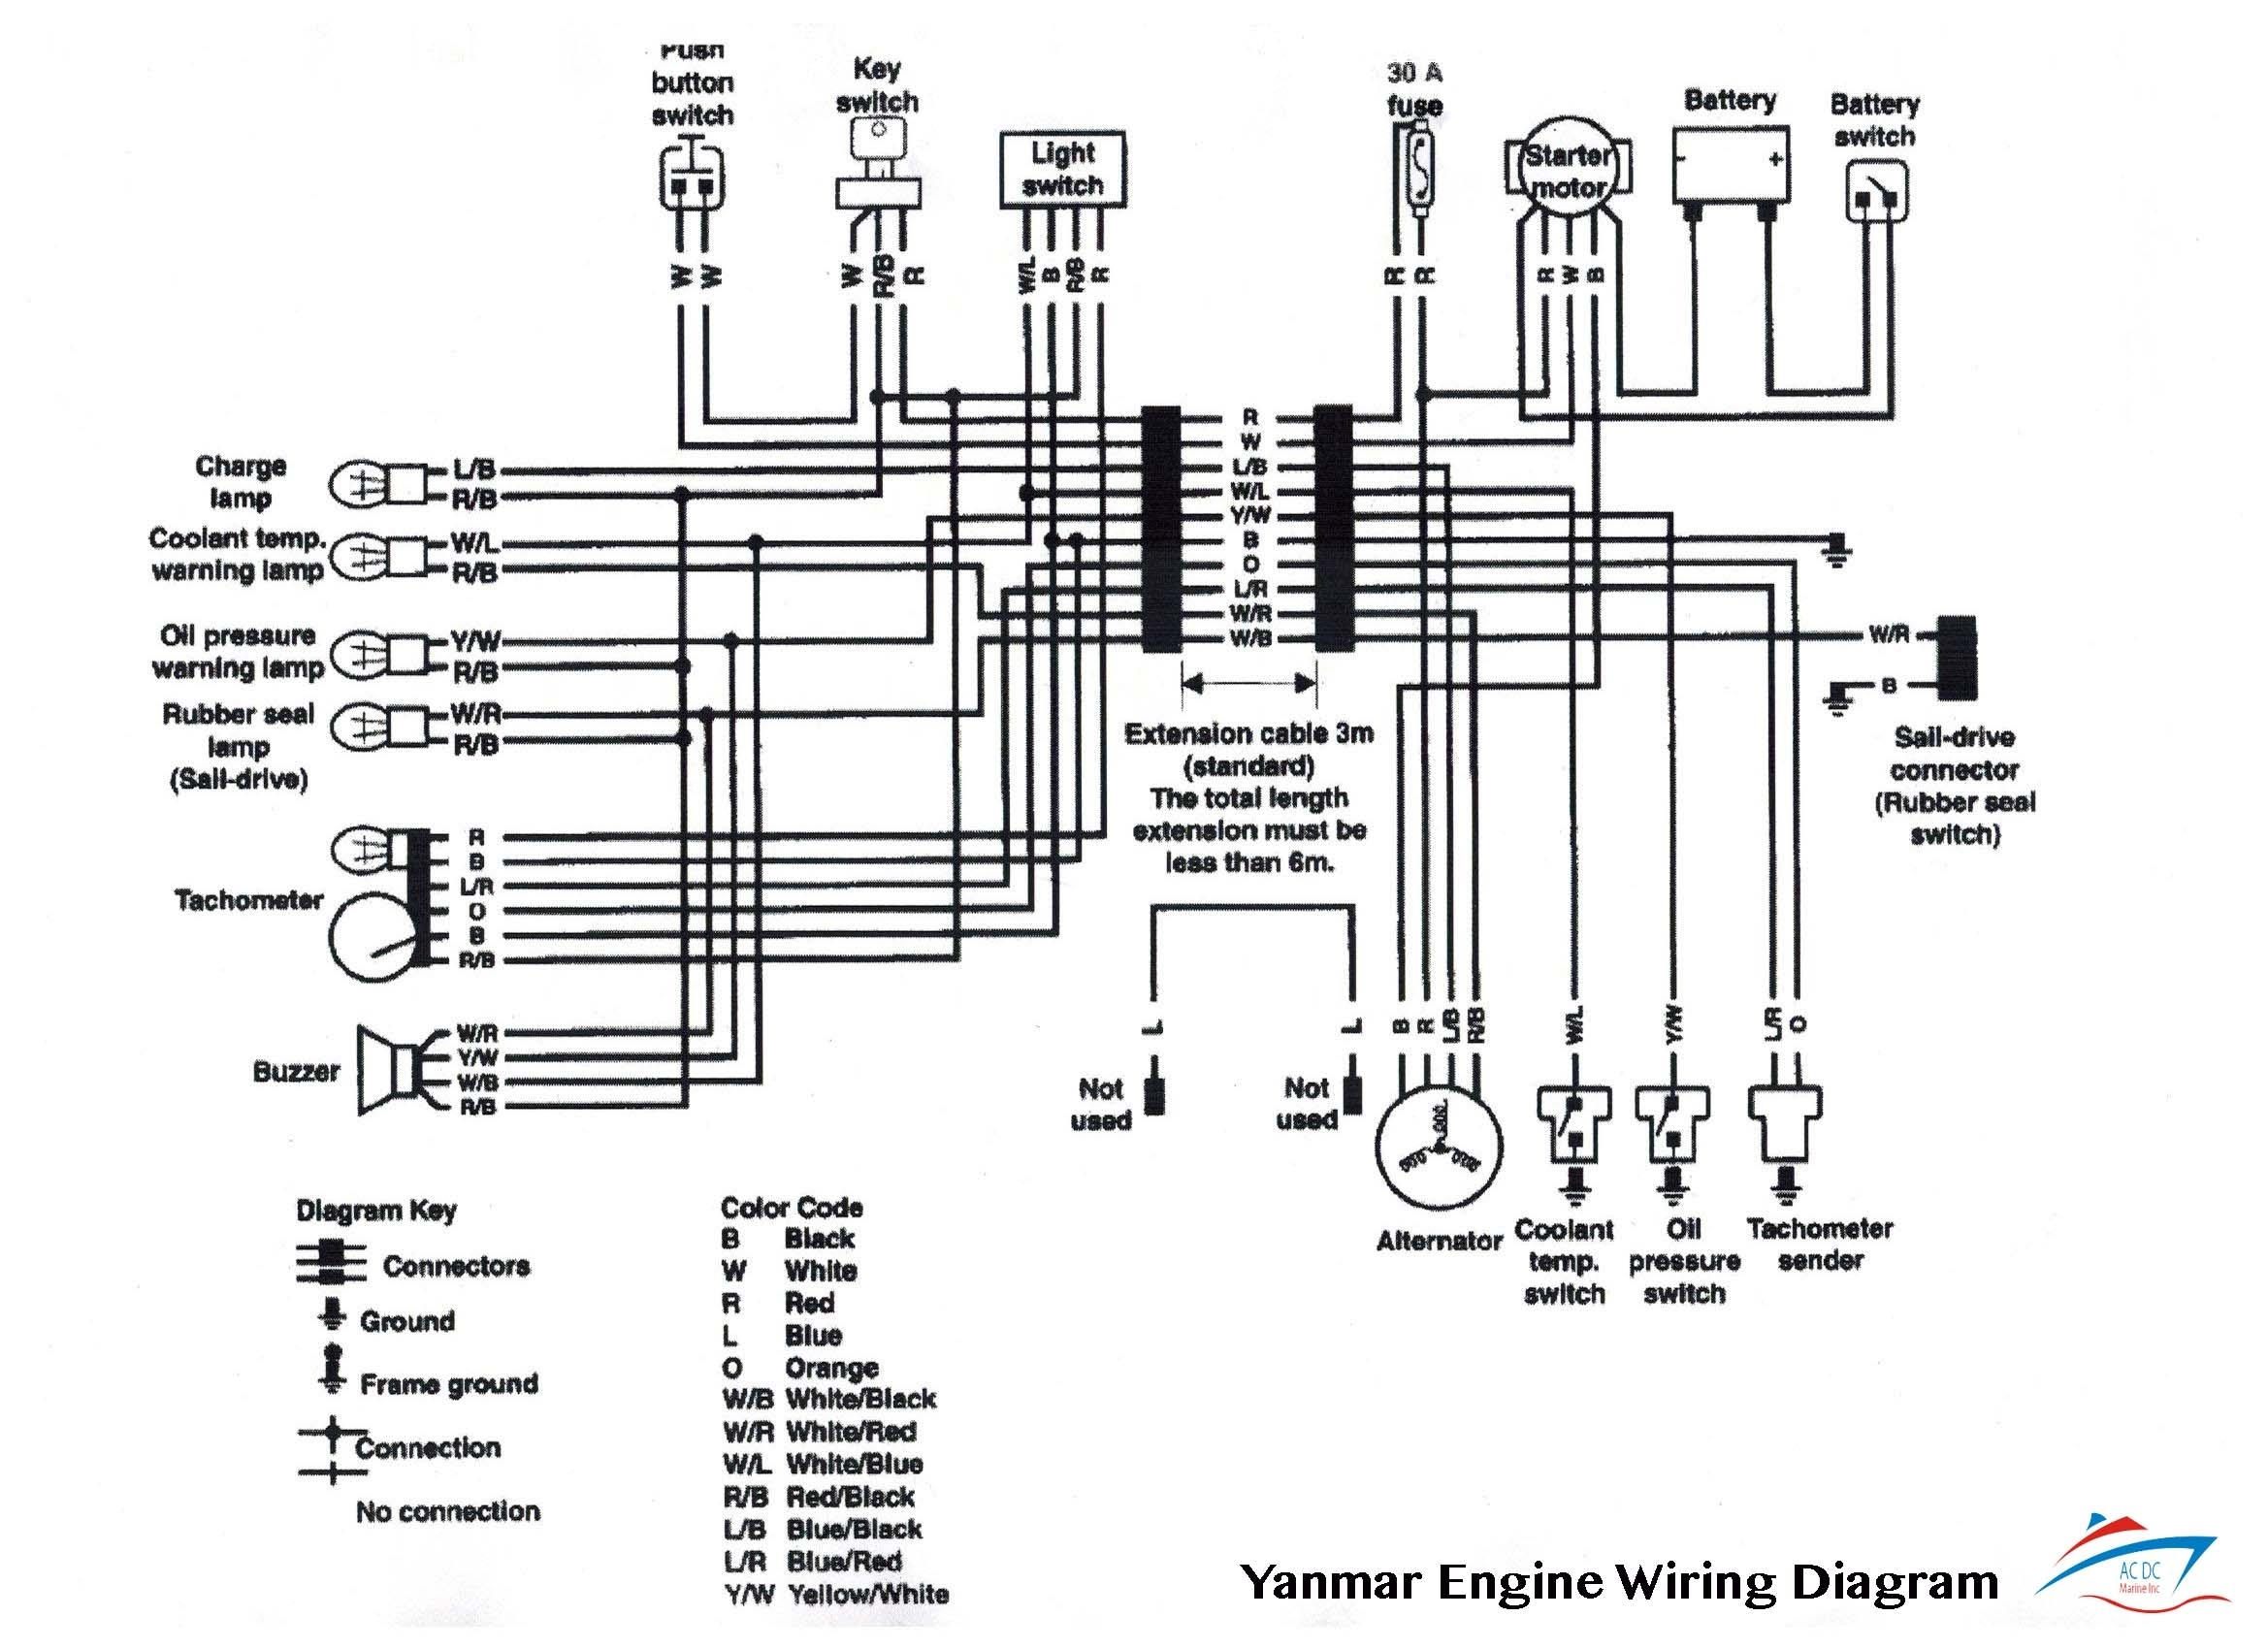 black yanmar marine engine instrument panel white gauges 10e280b3 x with regard to boat gauge wiring diagram for tachometer fuel gauge wiring diagram trim gauge wiring diagram \u2022 wiring equus fuel gauge wiring diagram at panicattacktreatment.co